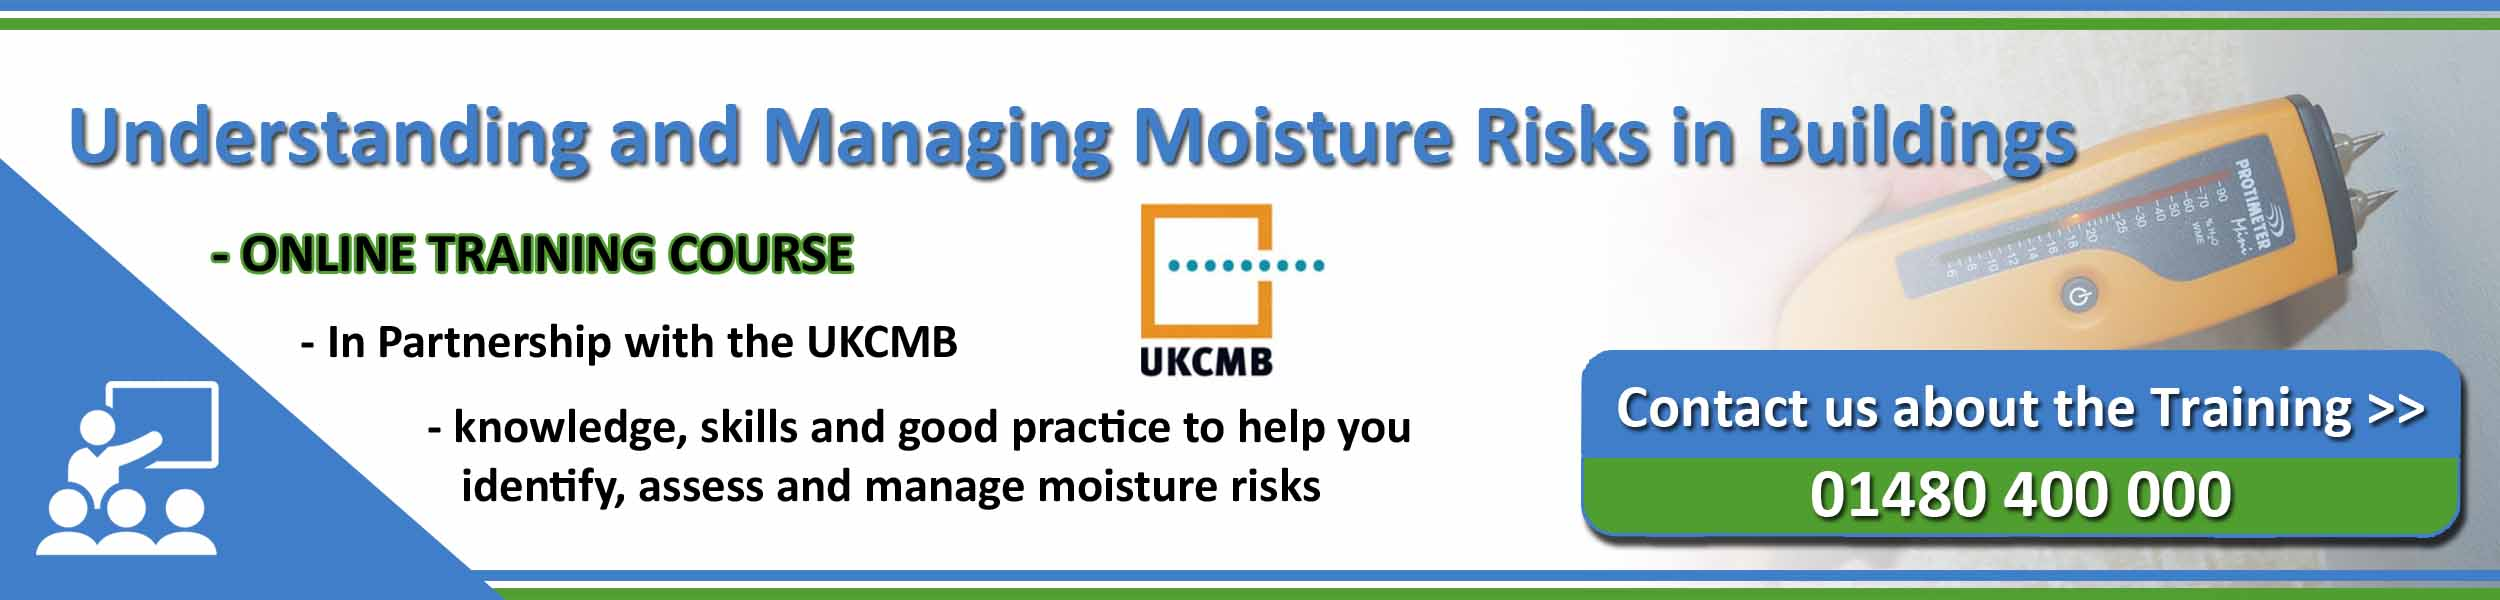 Understanding and Managing Moisture Risks in Buildings - training course